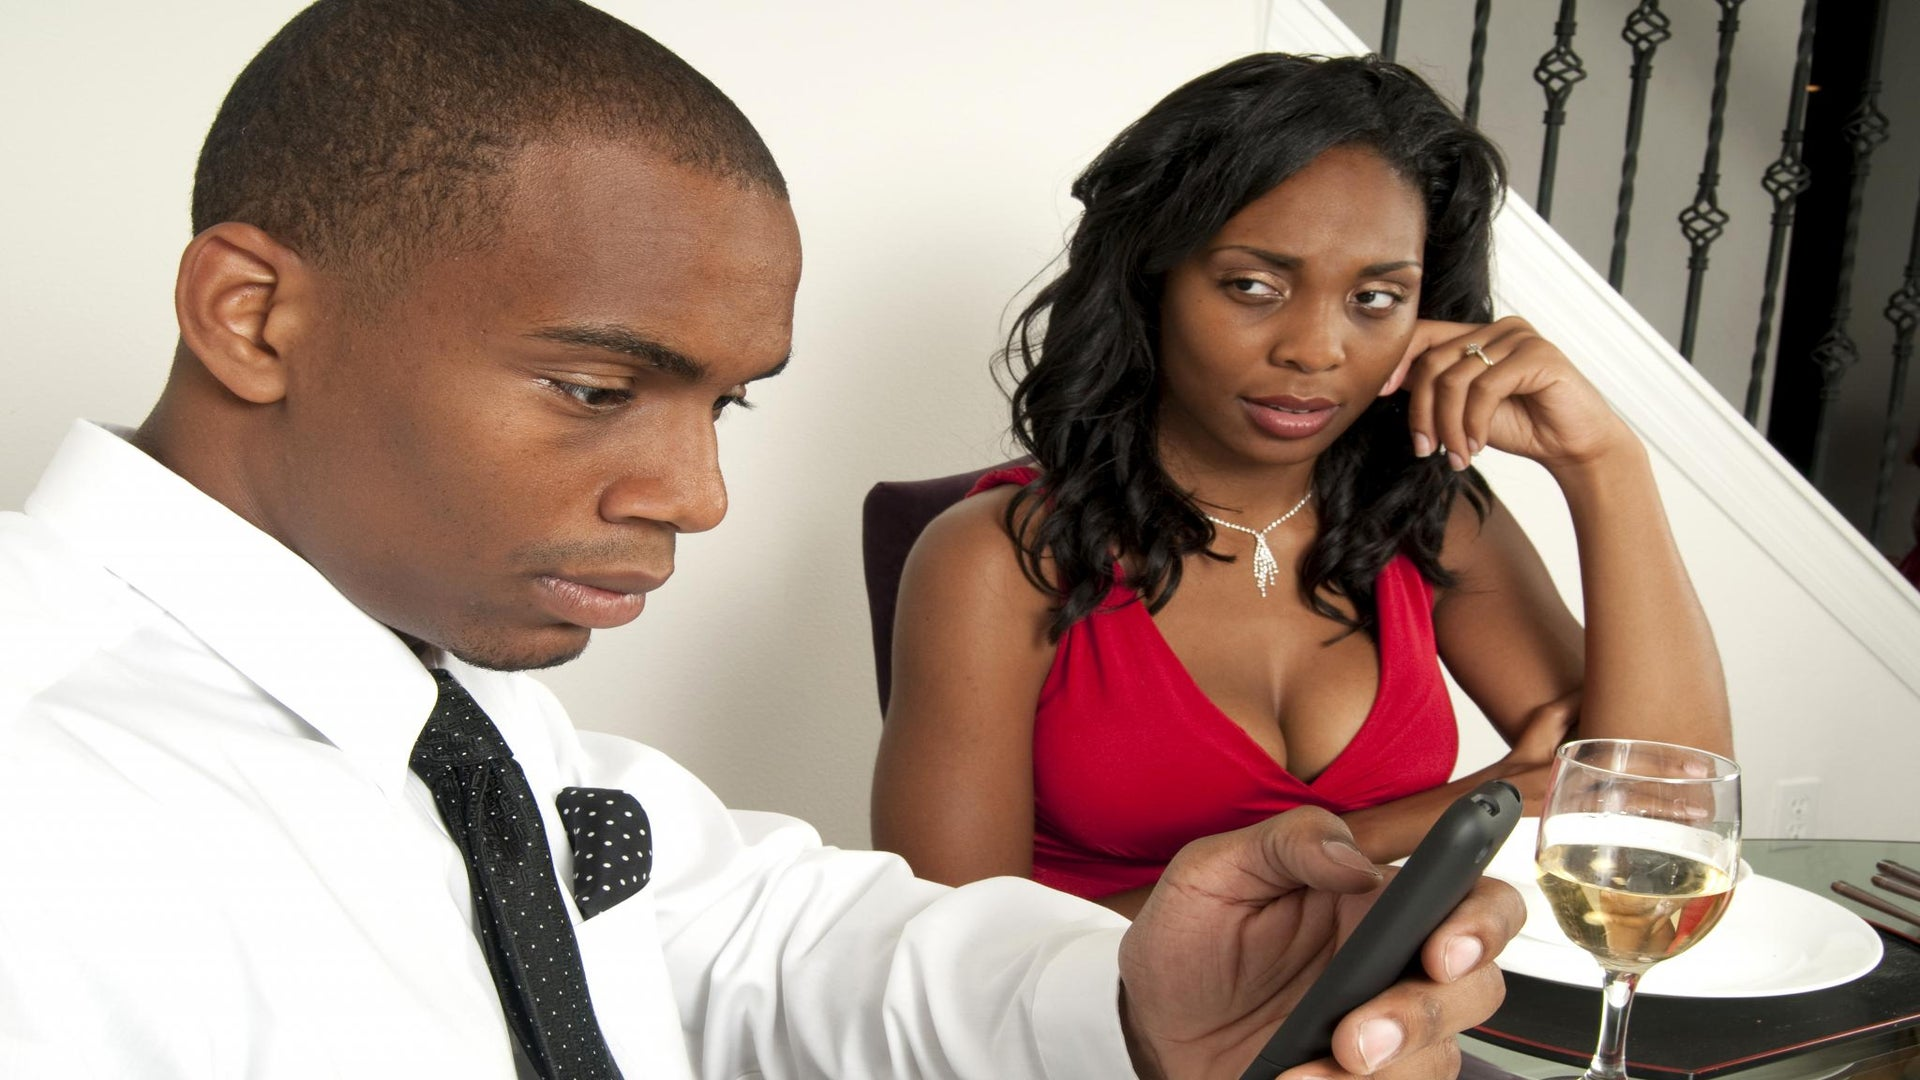 ESSENCE Poll: Which Cellphone Habits Do You Find Most Annoying?